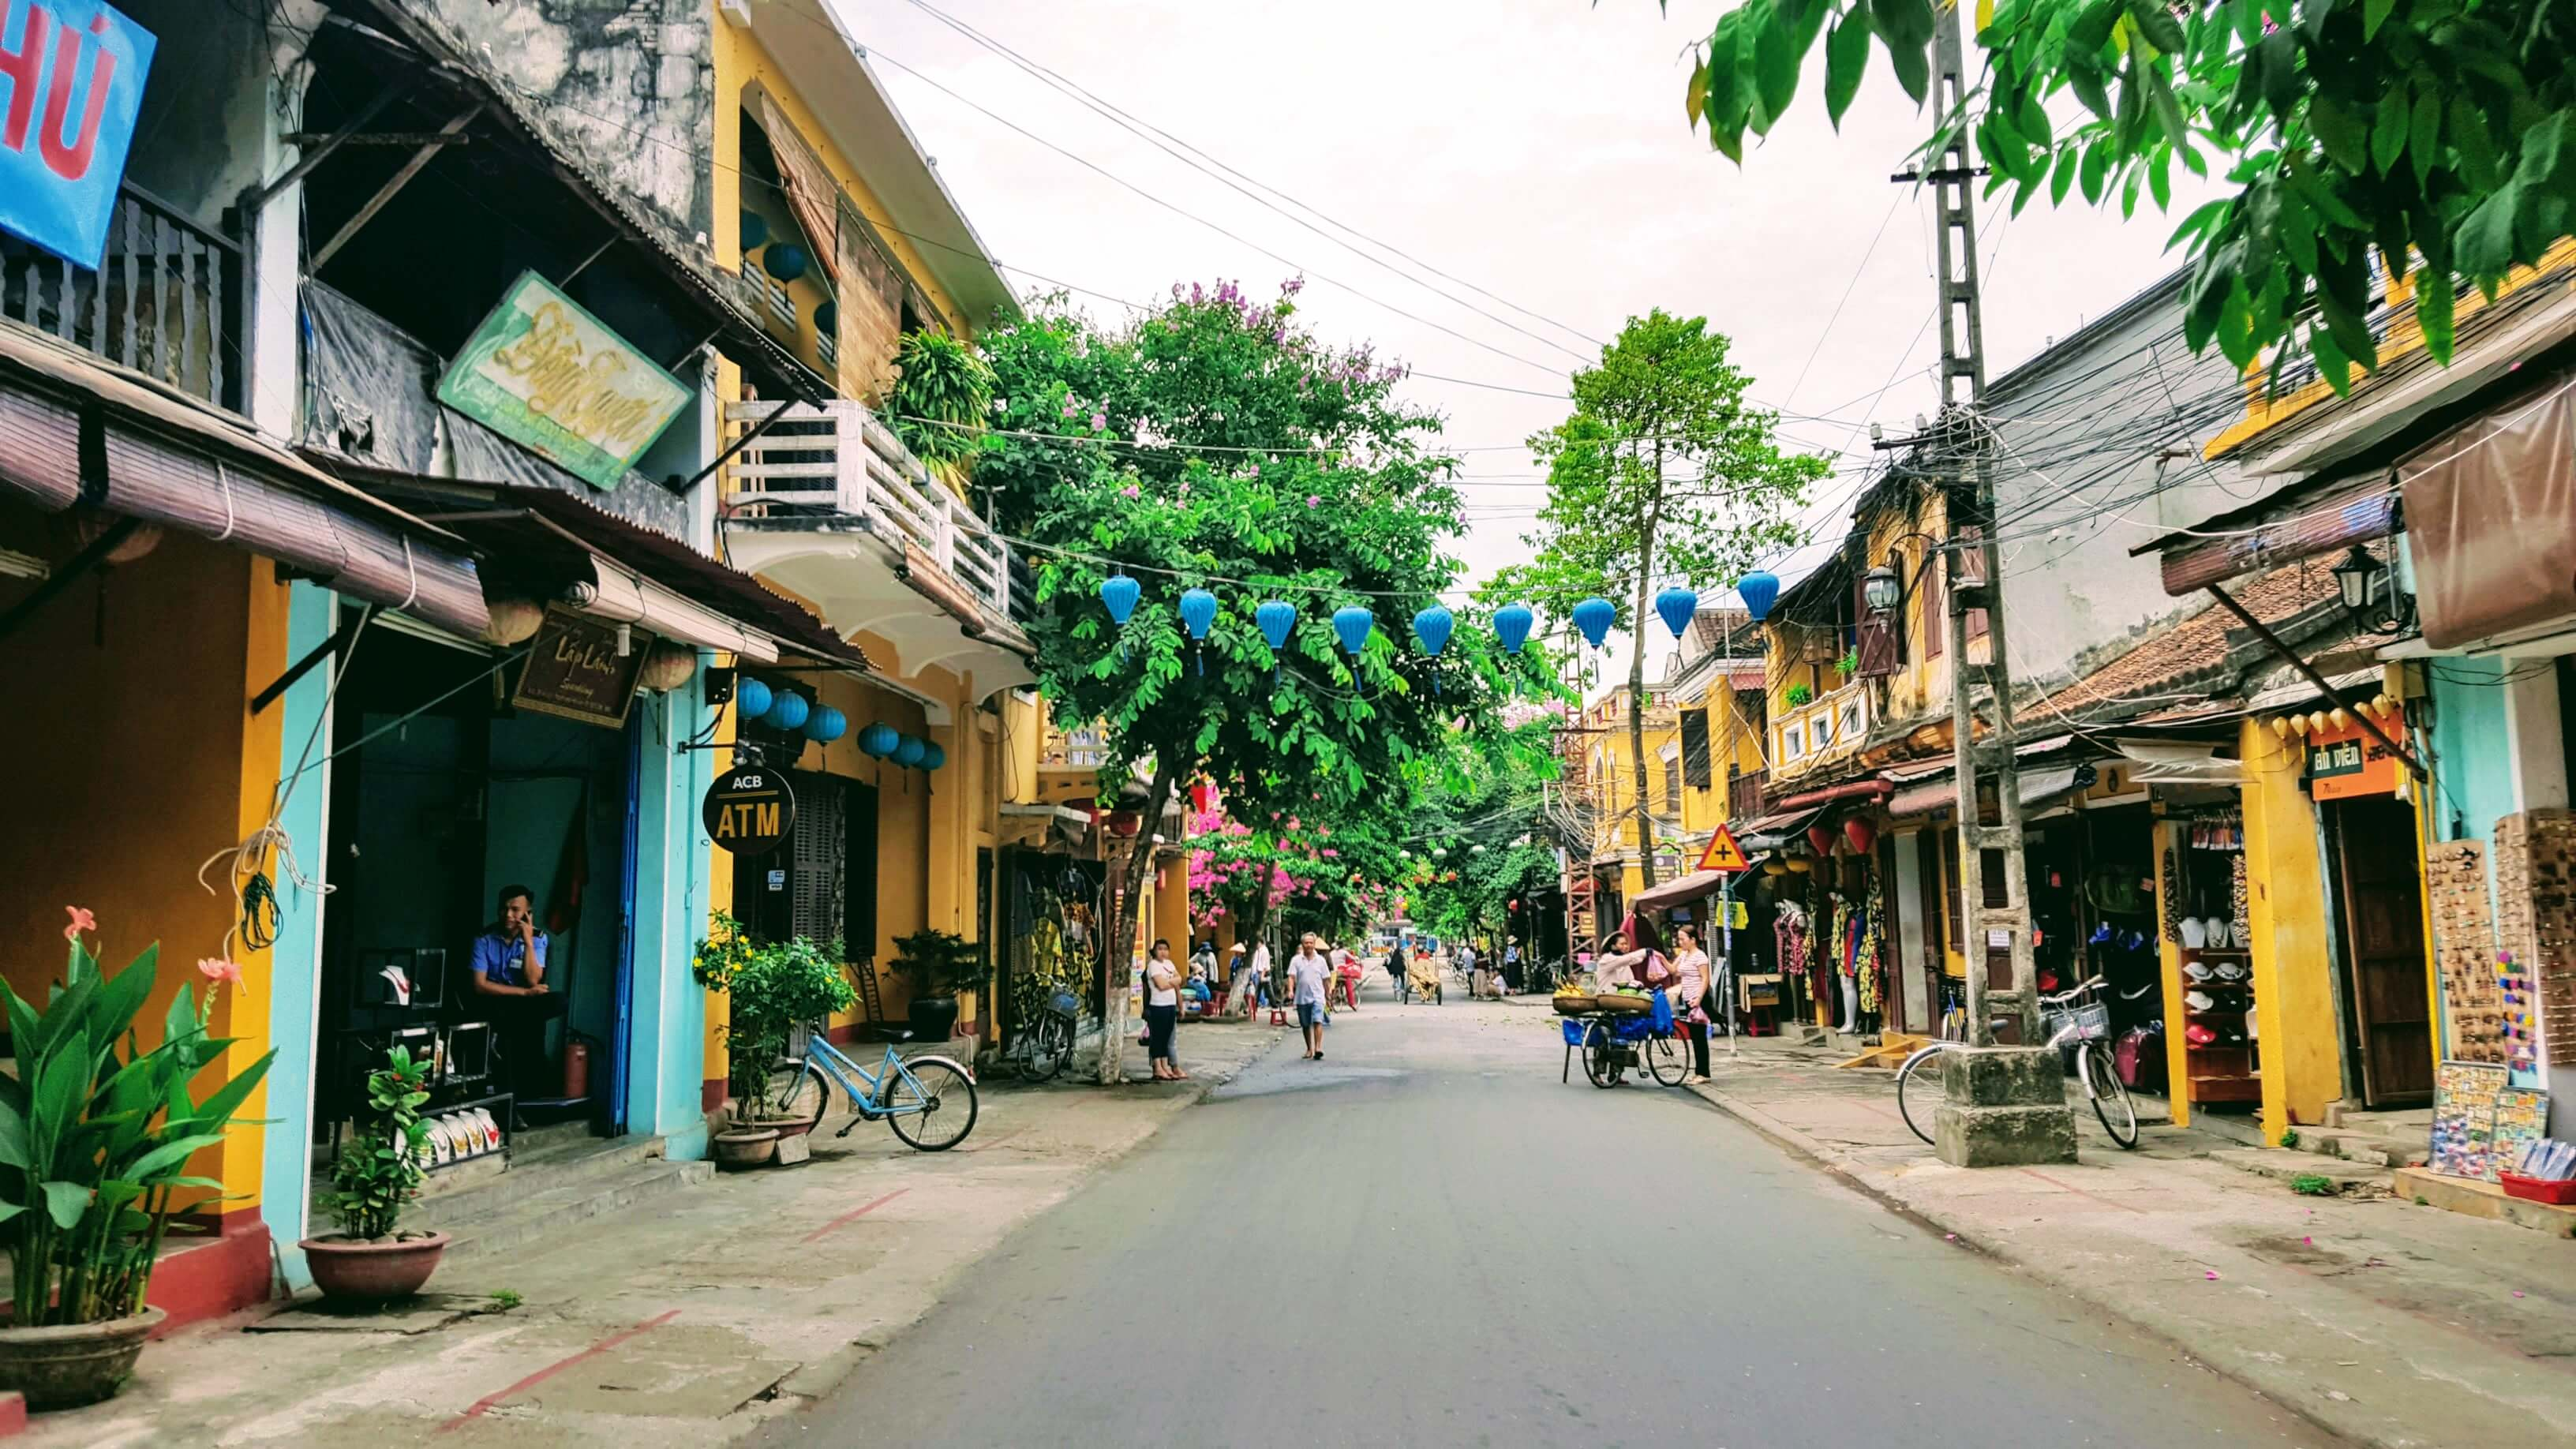 An-image-showing-the-ancient-town-of-HoiAn-one-of-the-best-things-to-do-in-HoiAn